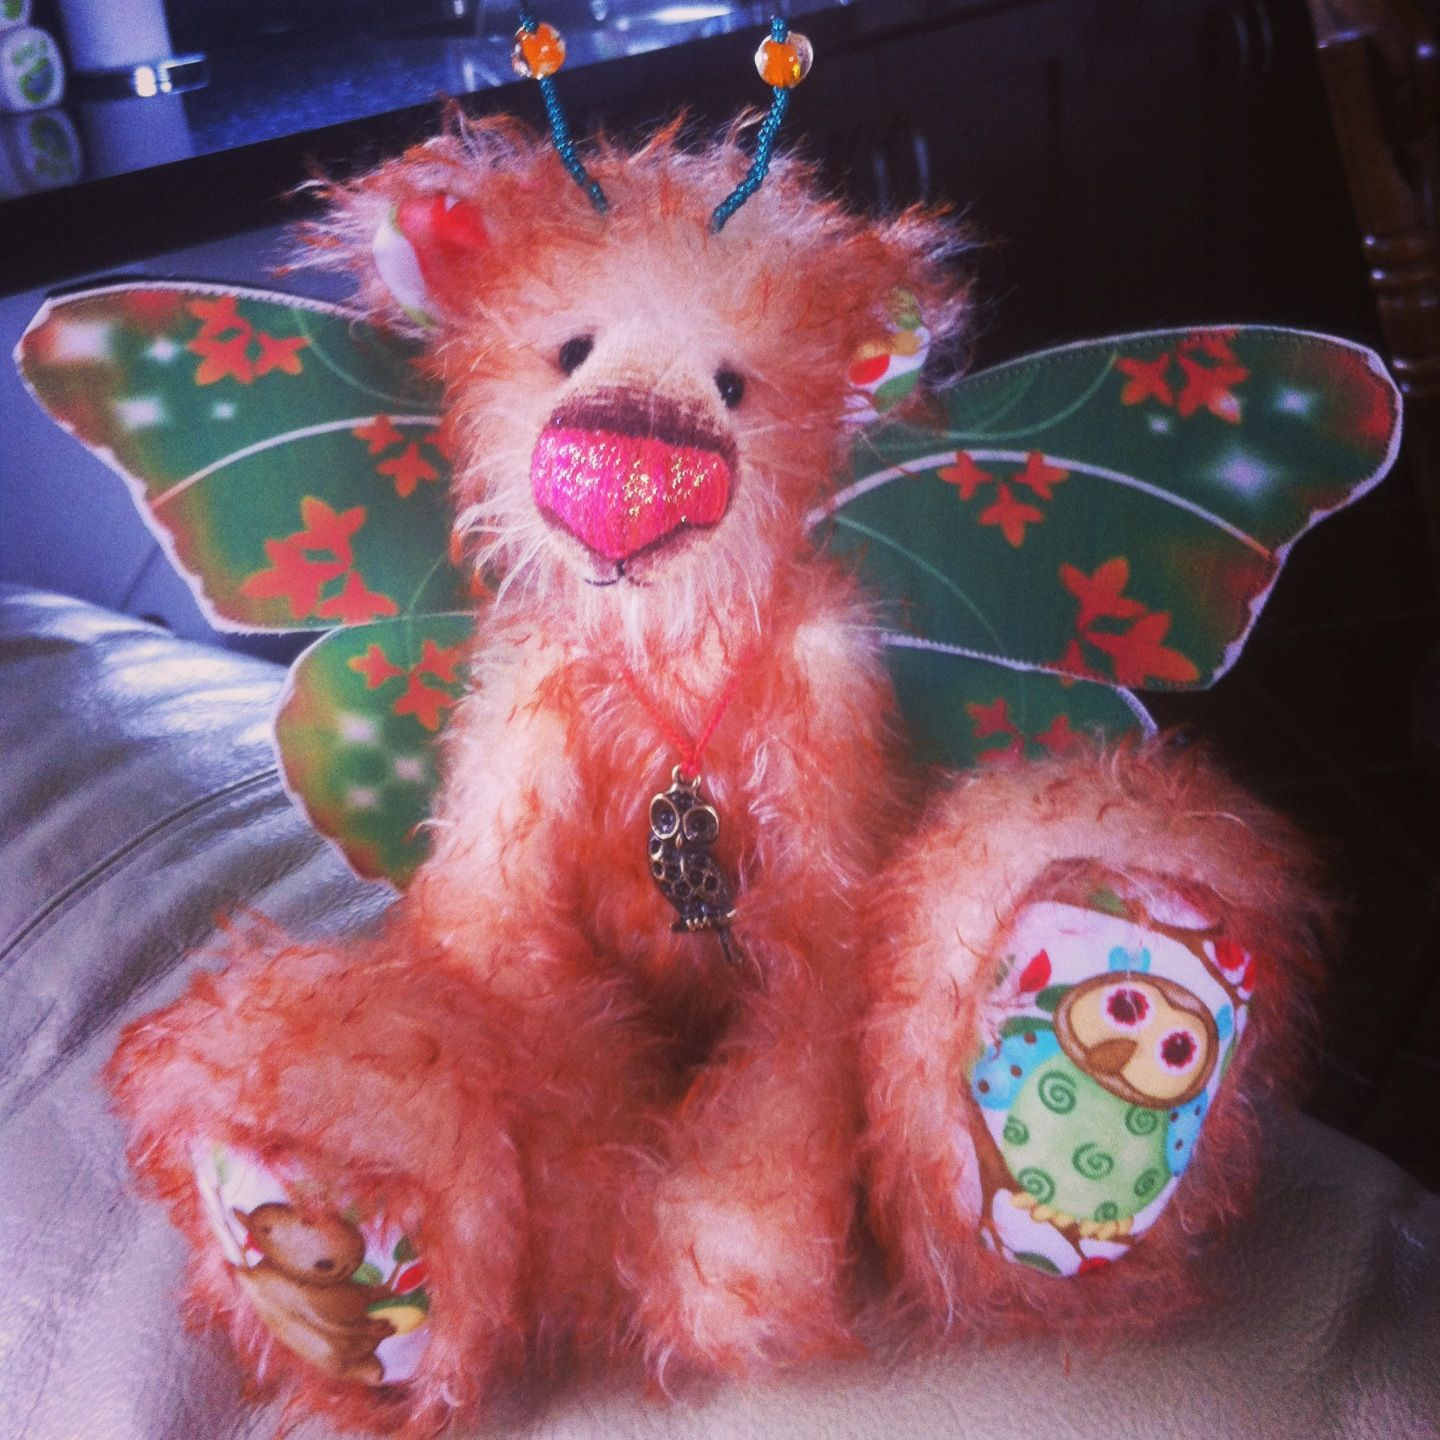 Rafferty One of a Kind by Chloe Summerville of Dusty Attic Bears & Rafferty One of a Kind by Chloe Summerville of Dusty Attic Bears ...